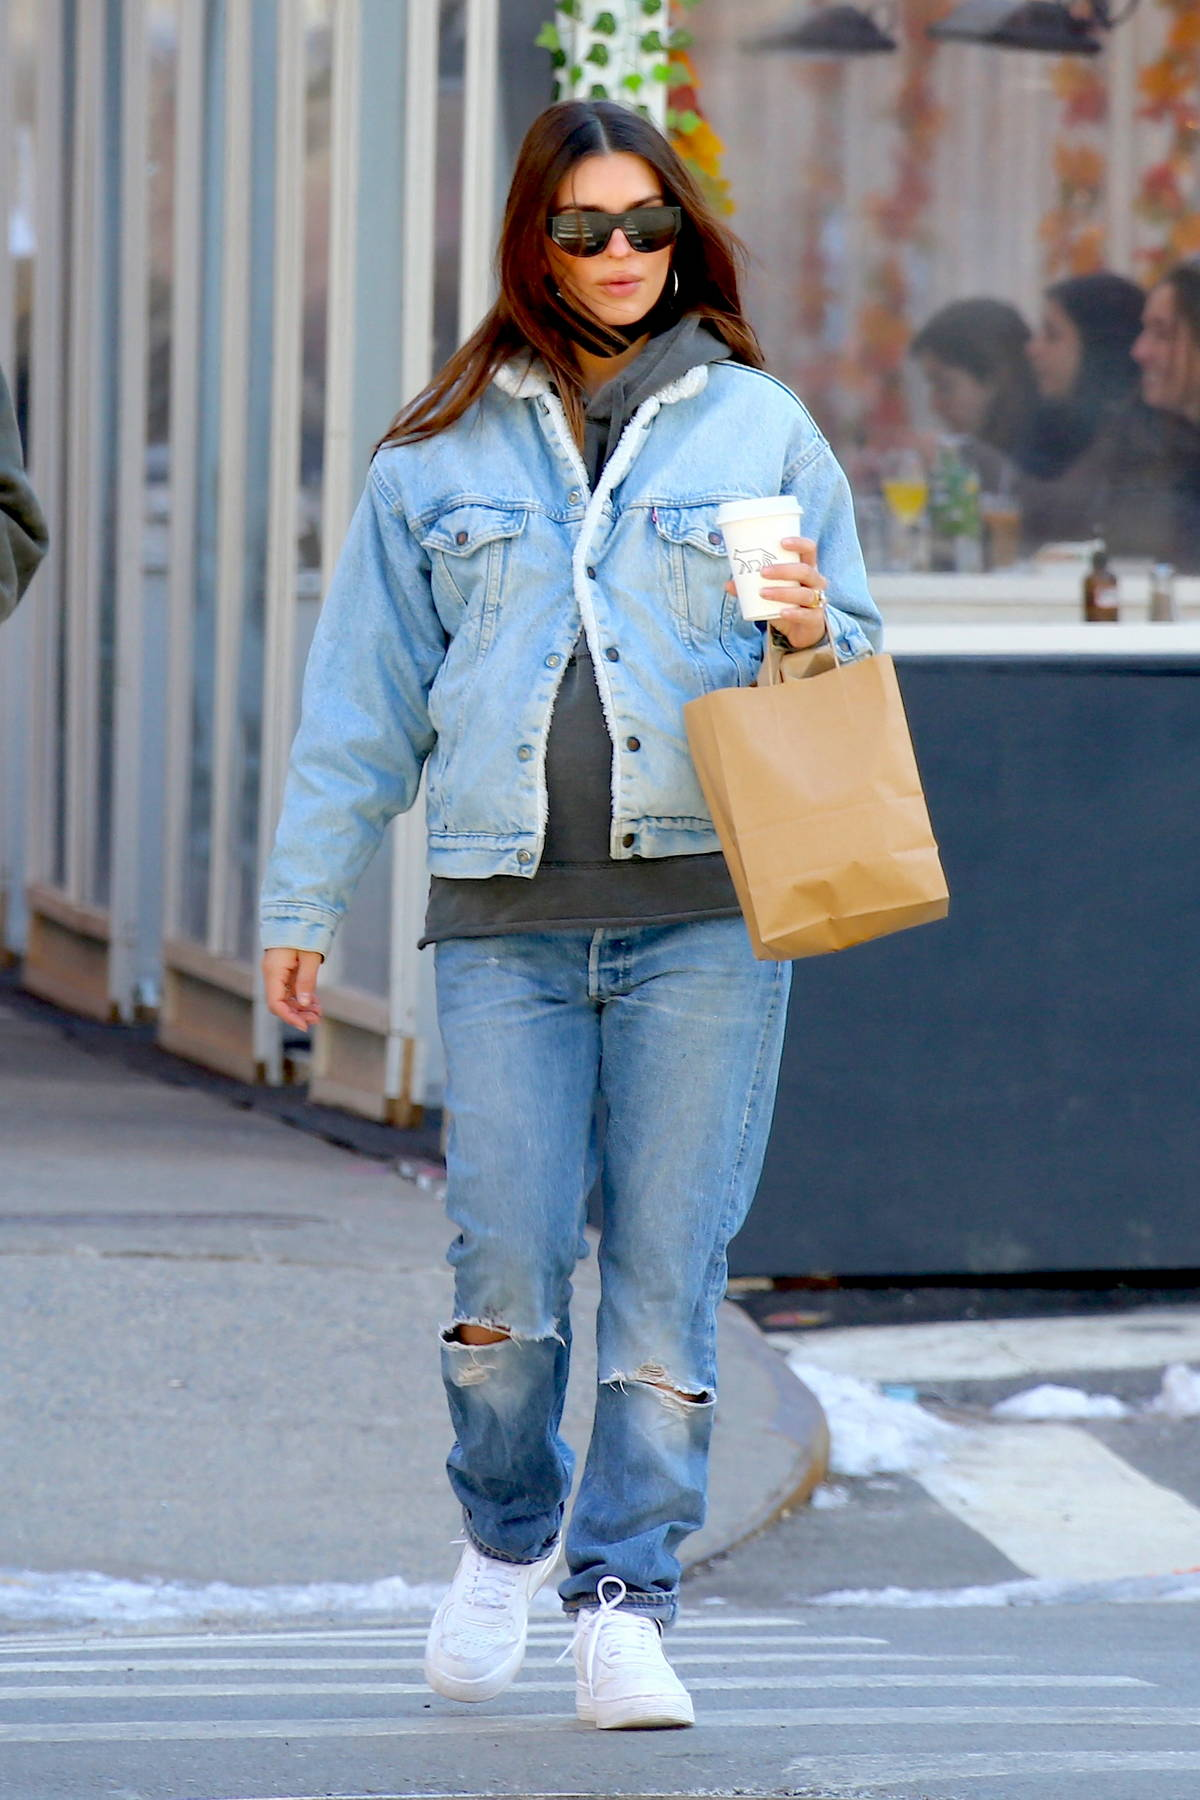 Emily Ratajkowski dons double denim as she steps out for a stroll with her husband in New York City